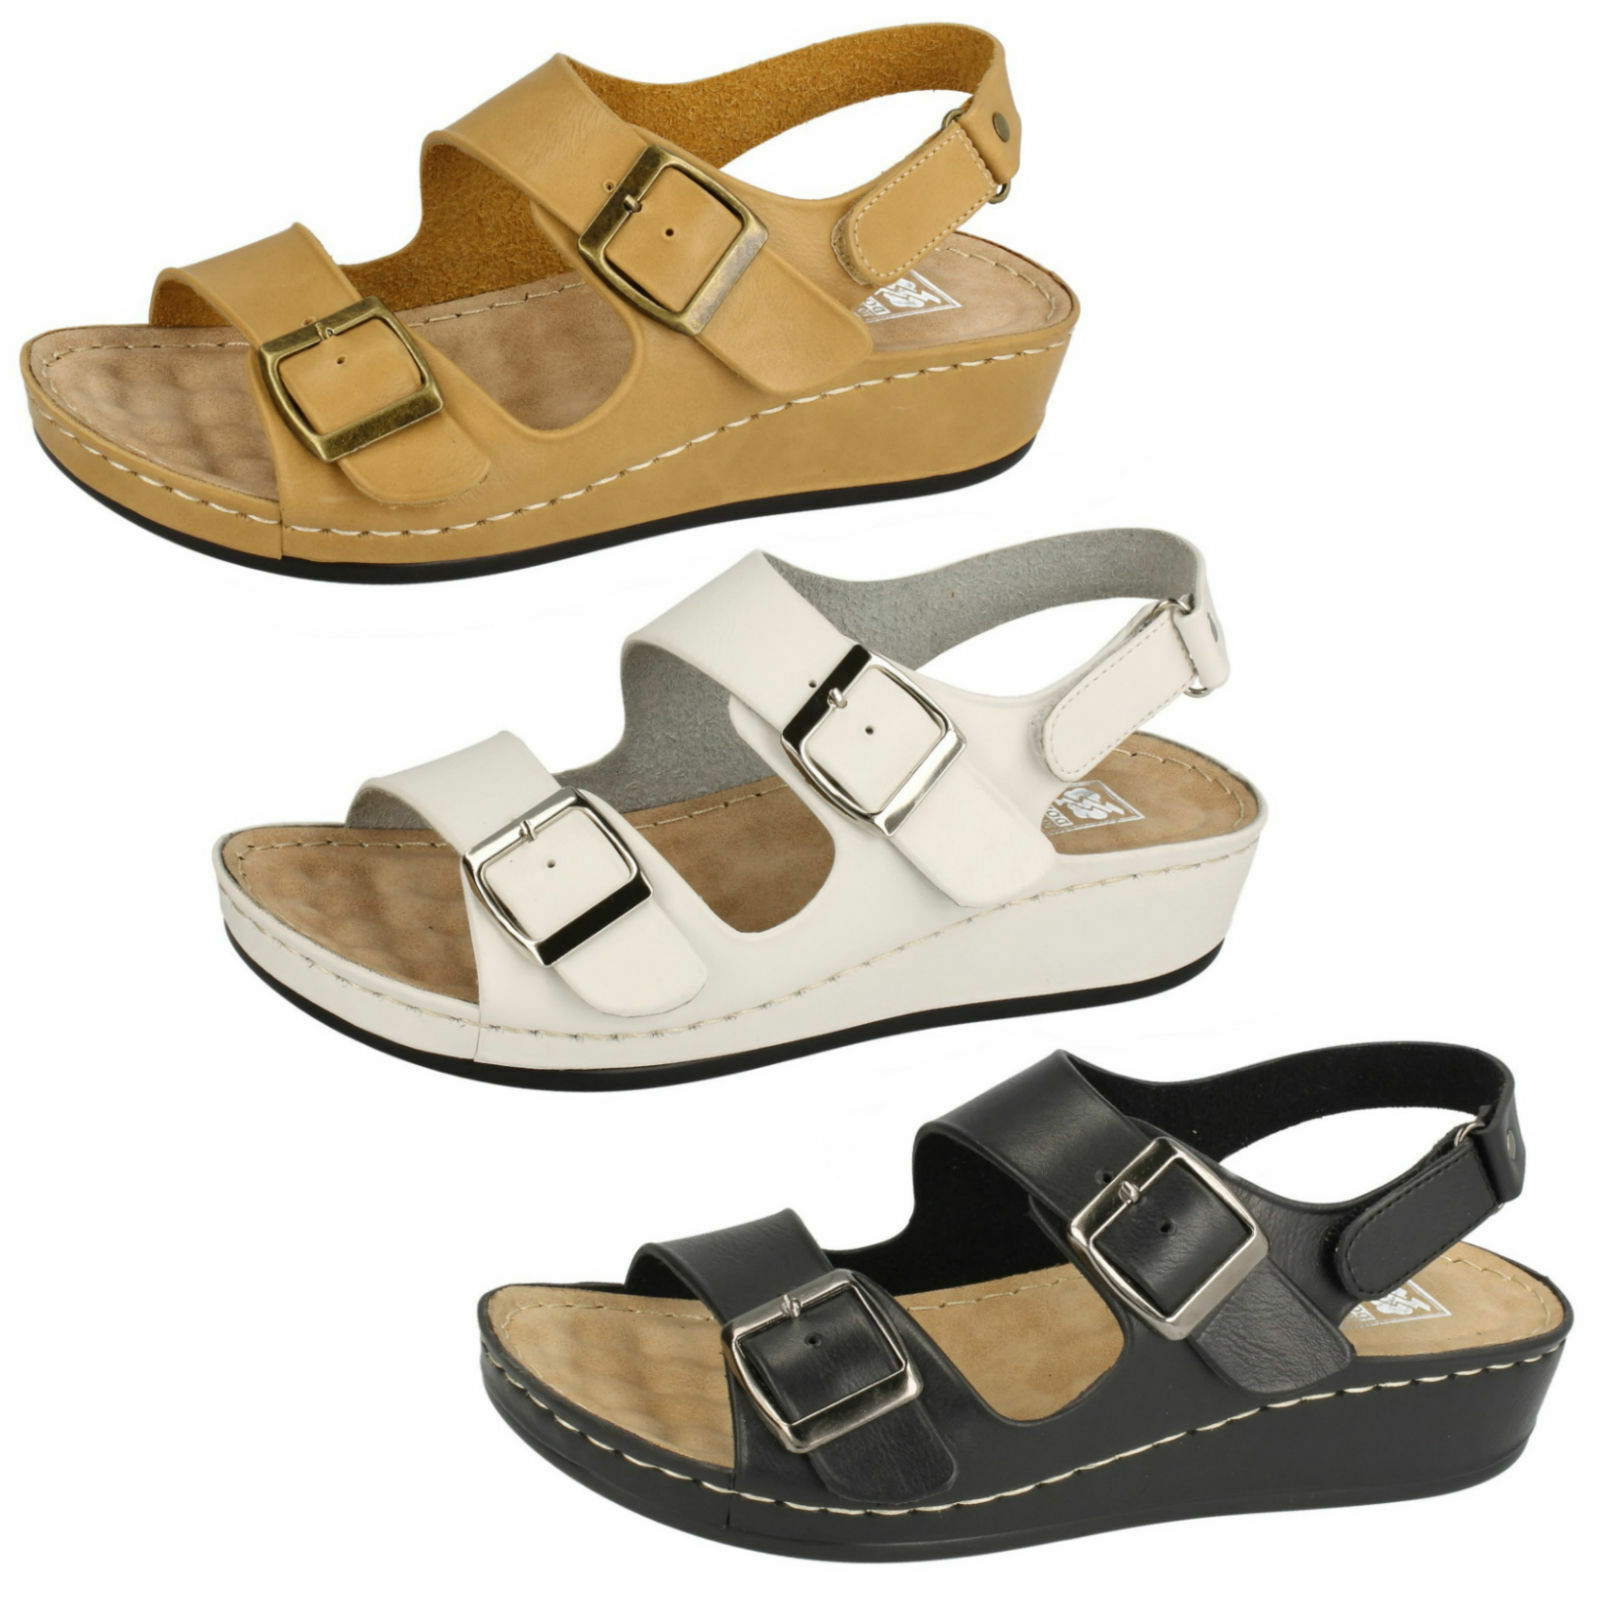 DOWN TO BUCKLE EARTH LADIES RIPTAPE STRAP OPEN TOE WEDGE BUCKLE TO SUMMER SANDALS F10452 003cd4